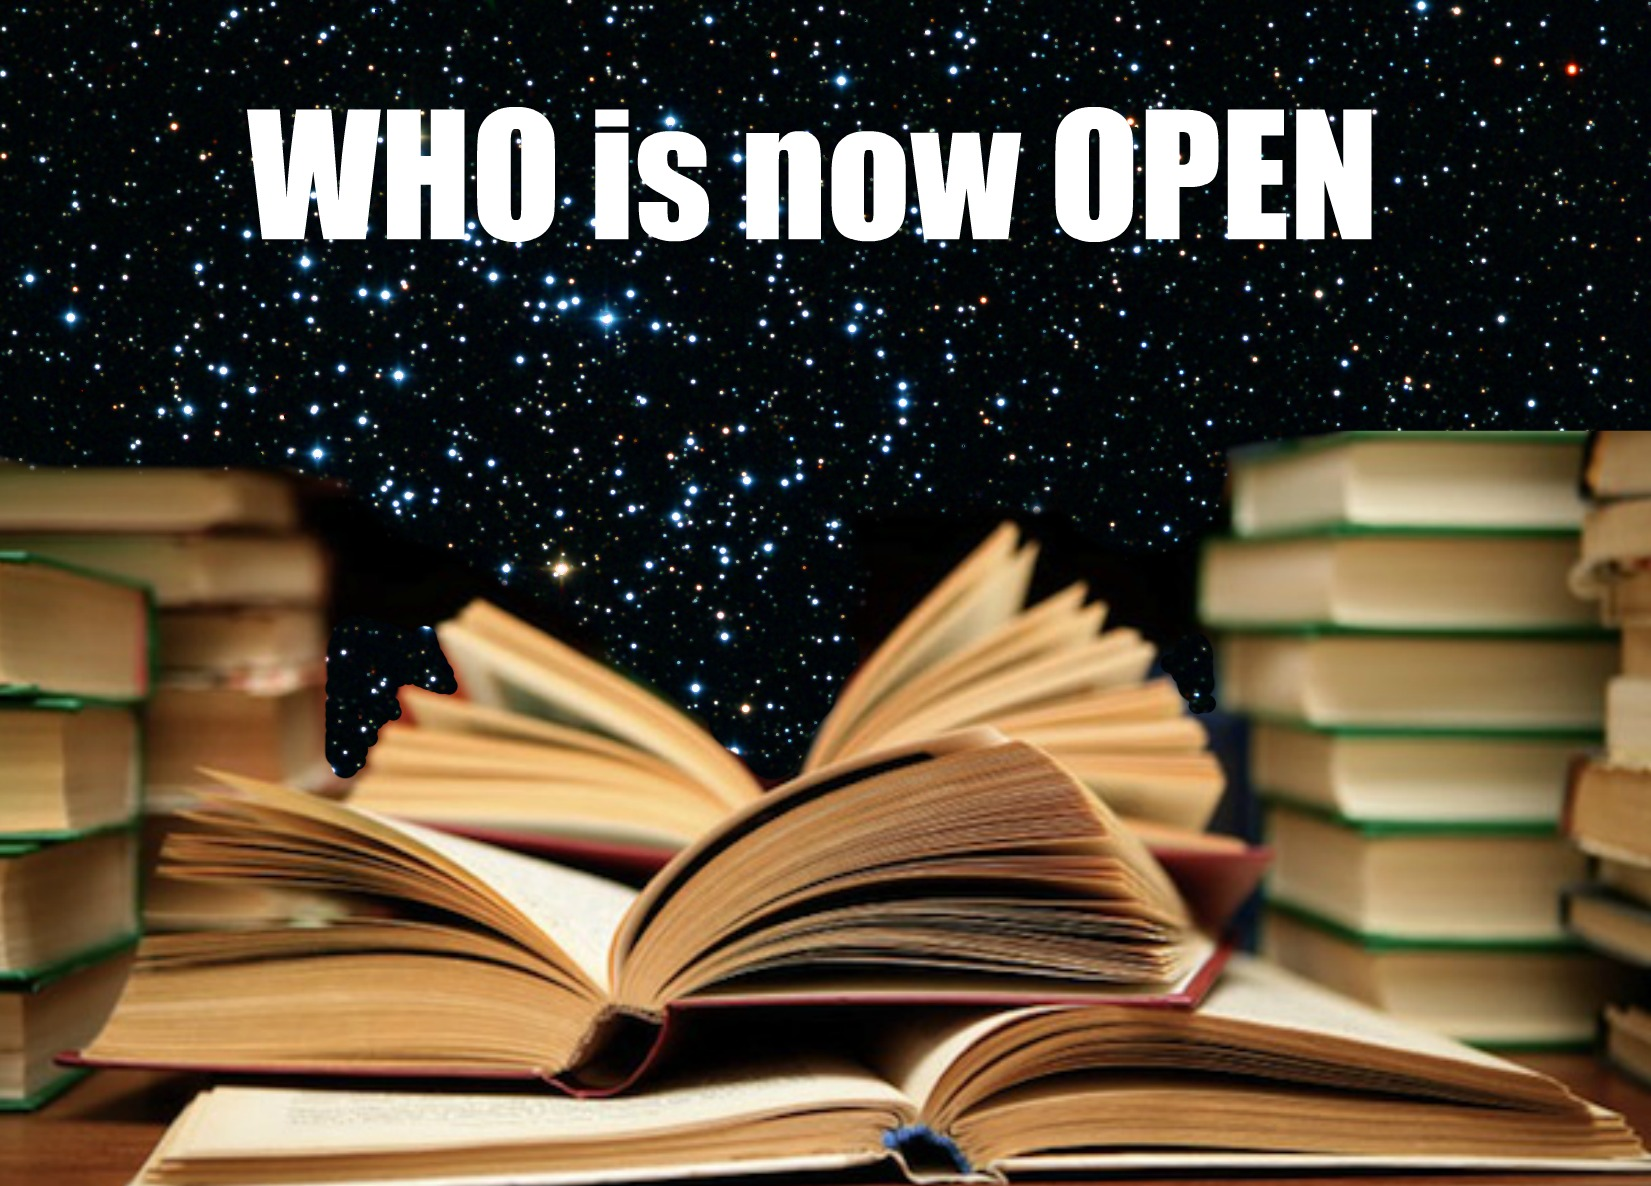 WHO is now open